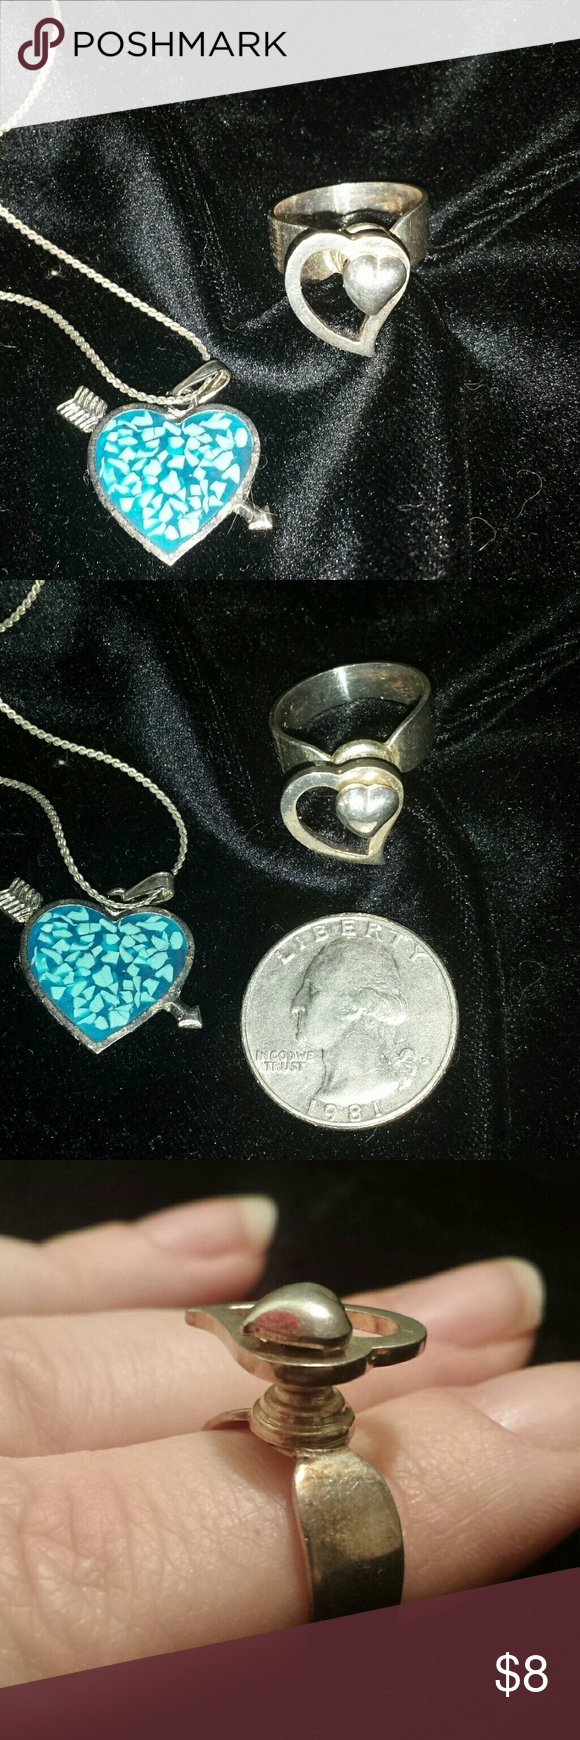 """Unique vintage silver heart jewelry bundle Vintage silver tone jewelry with hearts is perfect for Valentine's Day. Heart pendant with arrow is accented with turquoise chips in resin. Pendant is in EUC. Chain is 16"""" long, has some tarnish on ring clasp.  Unique ring has a swiveling setting. Sits high on the finger. Tiny heart is stationary will larger heart swivels. Ring is size 6.5 An adorable little bundle for a tween. Jewelry"""